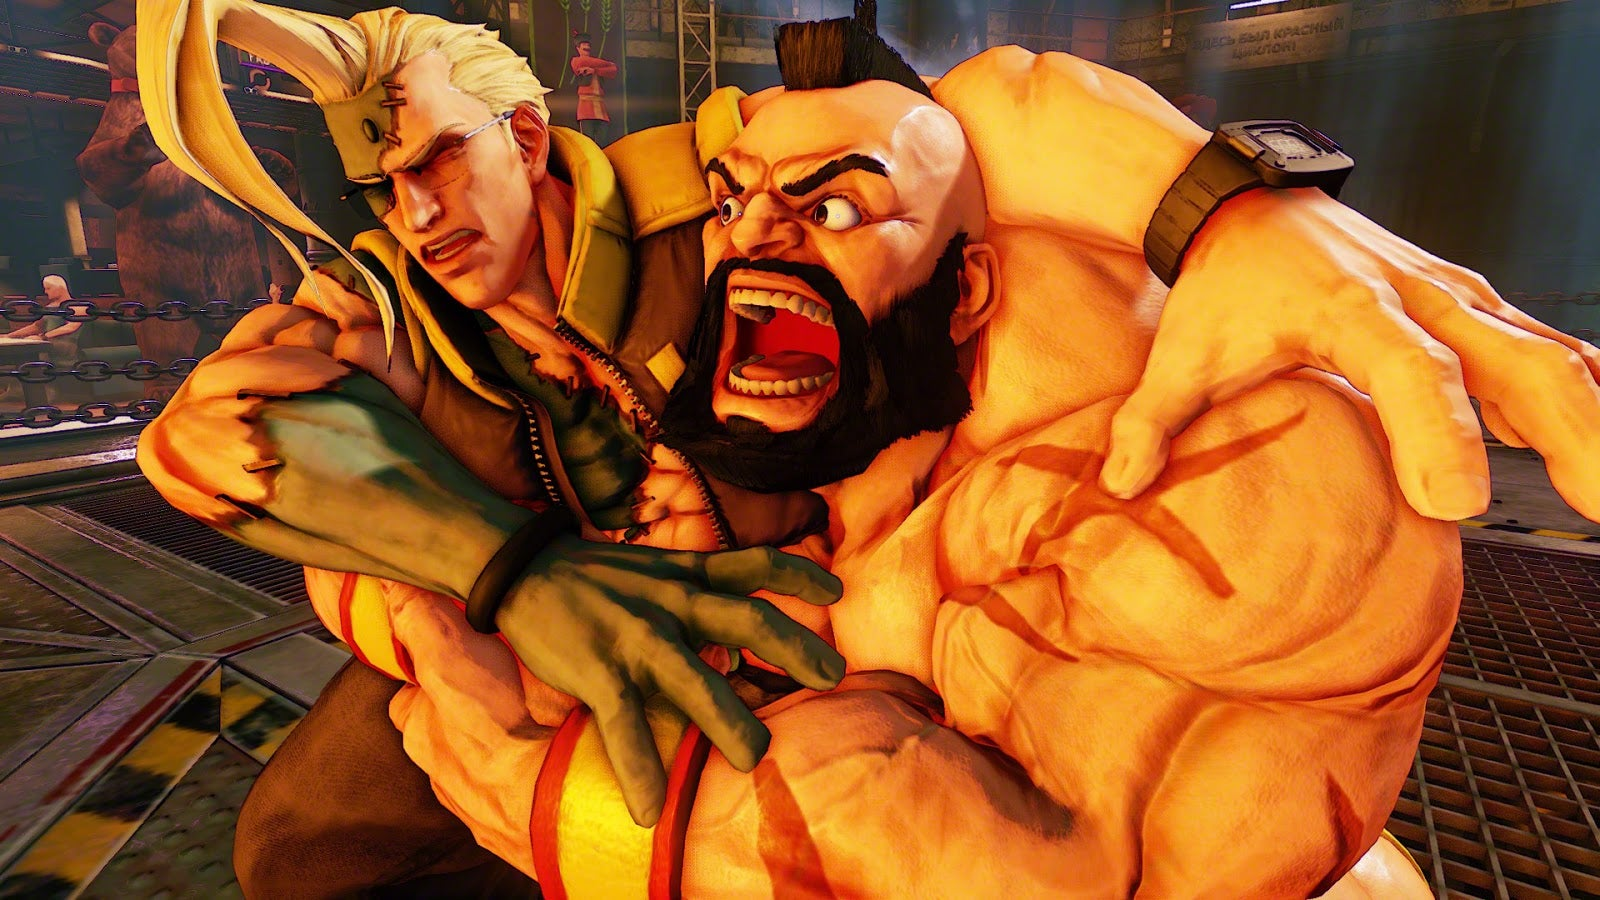 Capcom Wants Street Fighter V Players To Publicly Shame Rage-quitters